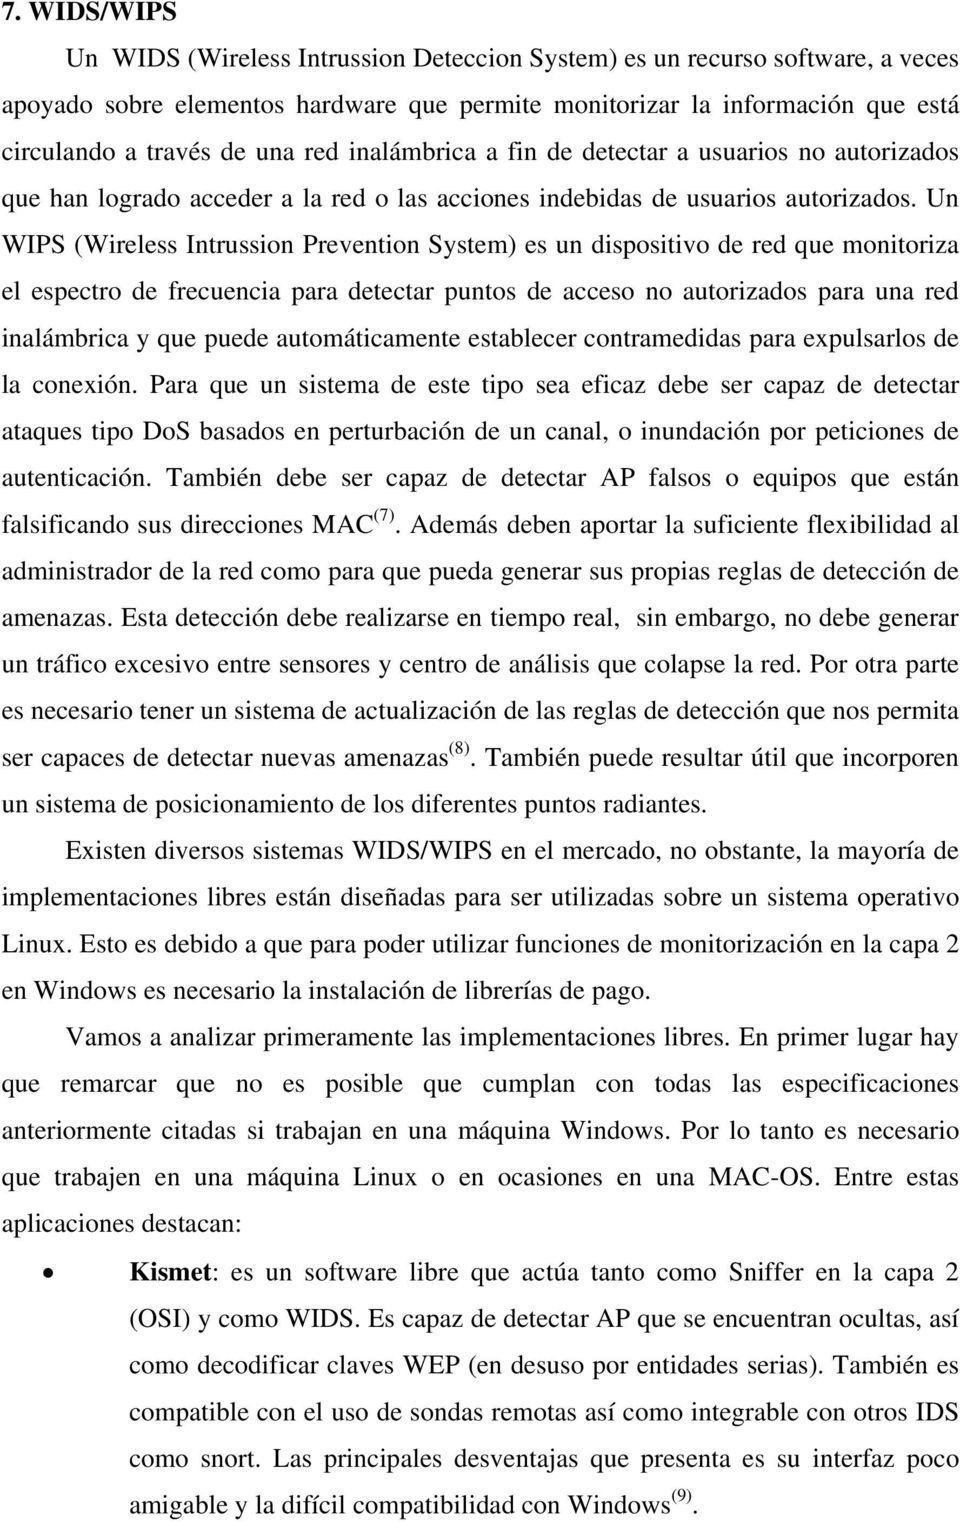 Un WIPS (Wireless Intrussion Prevention System) es un dispositivo de red que monitoriza el espectro de frecuencia para detectar puntos de acceso no autorizados para una red inalámbrica y que puede